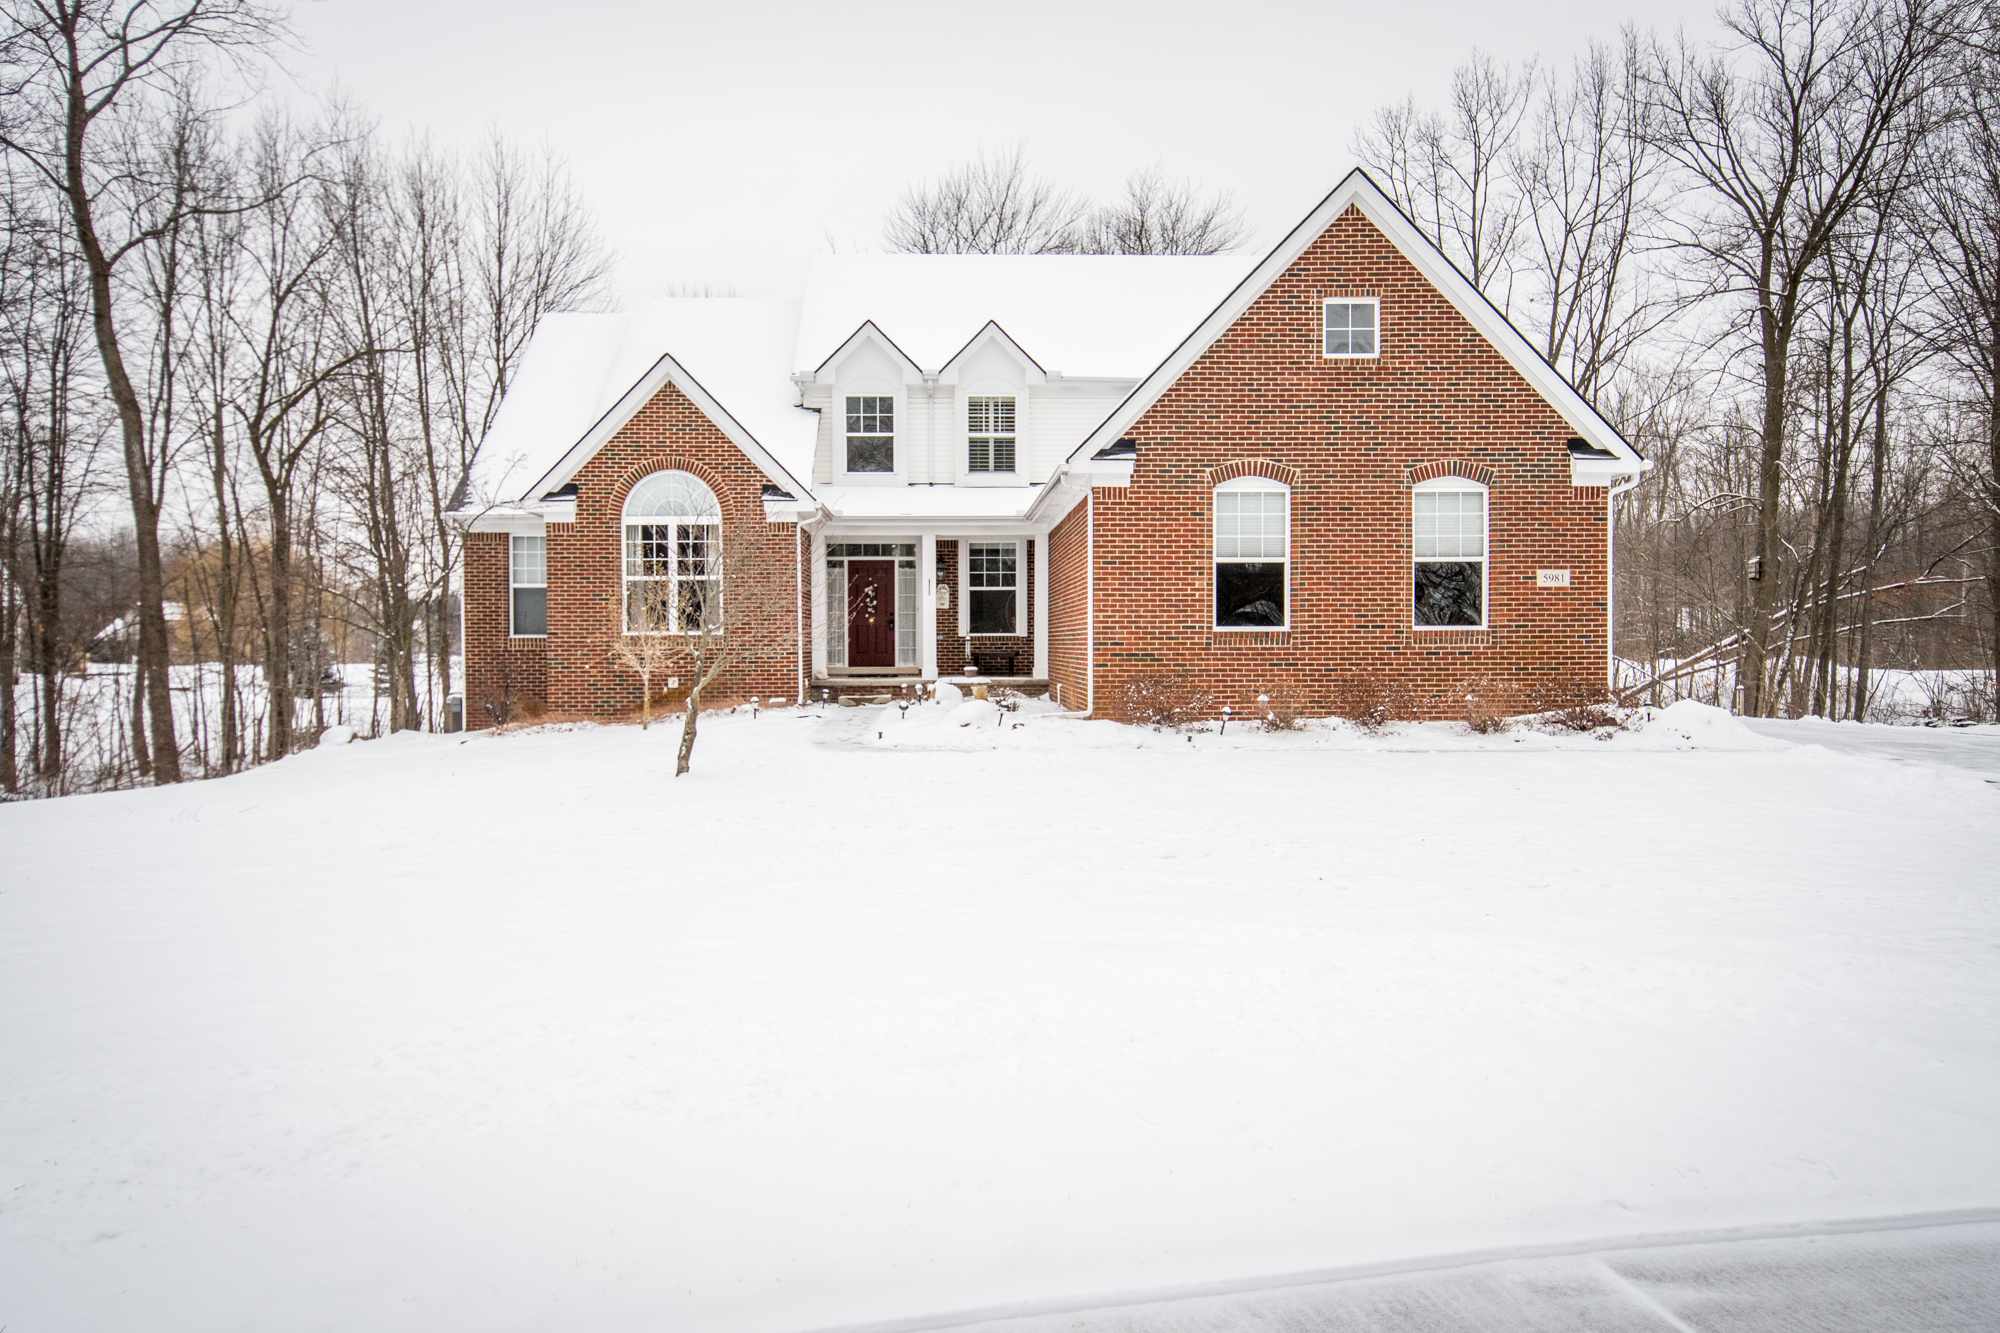 Oak Bend Court, Howell - $395,000   DOM 12 / Sold for over asking price / 16 Showings